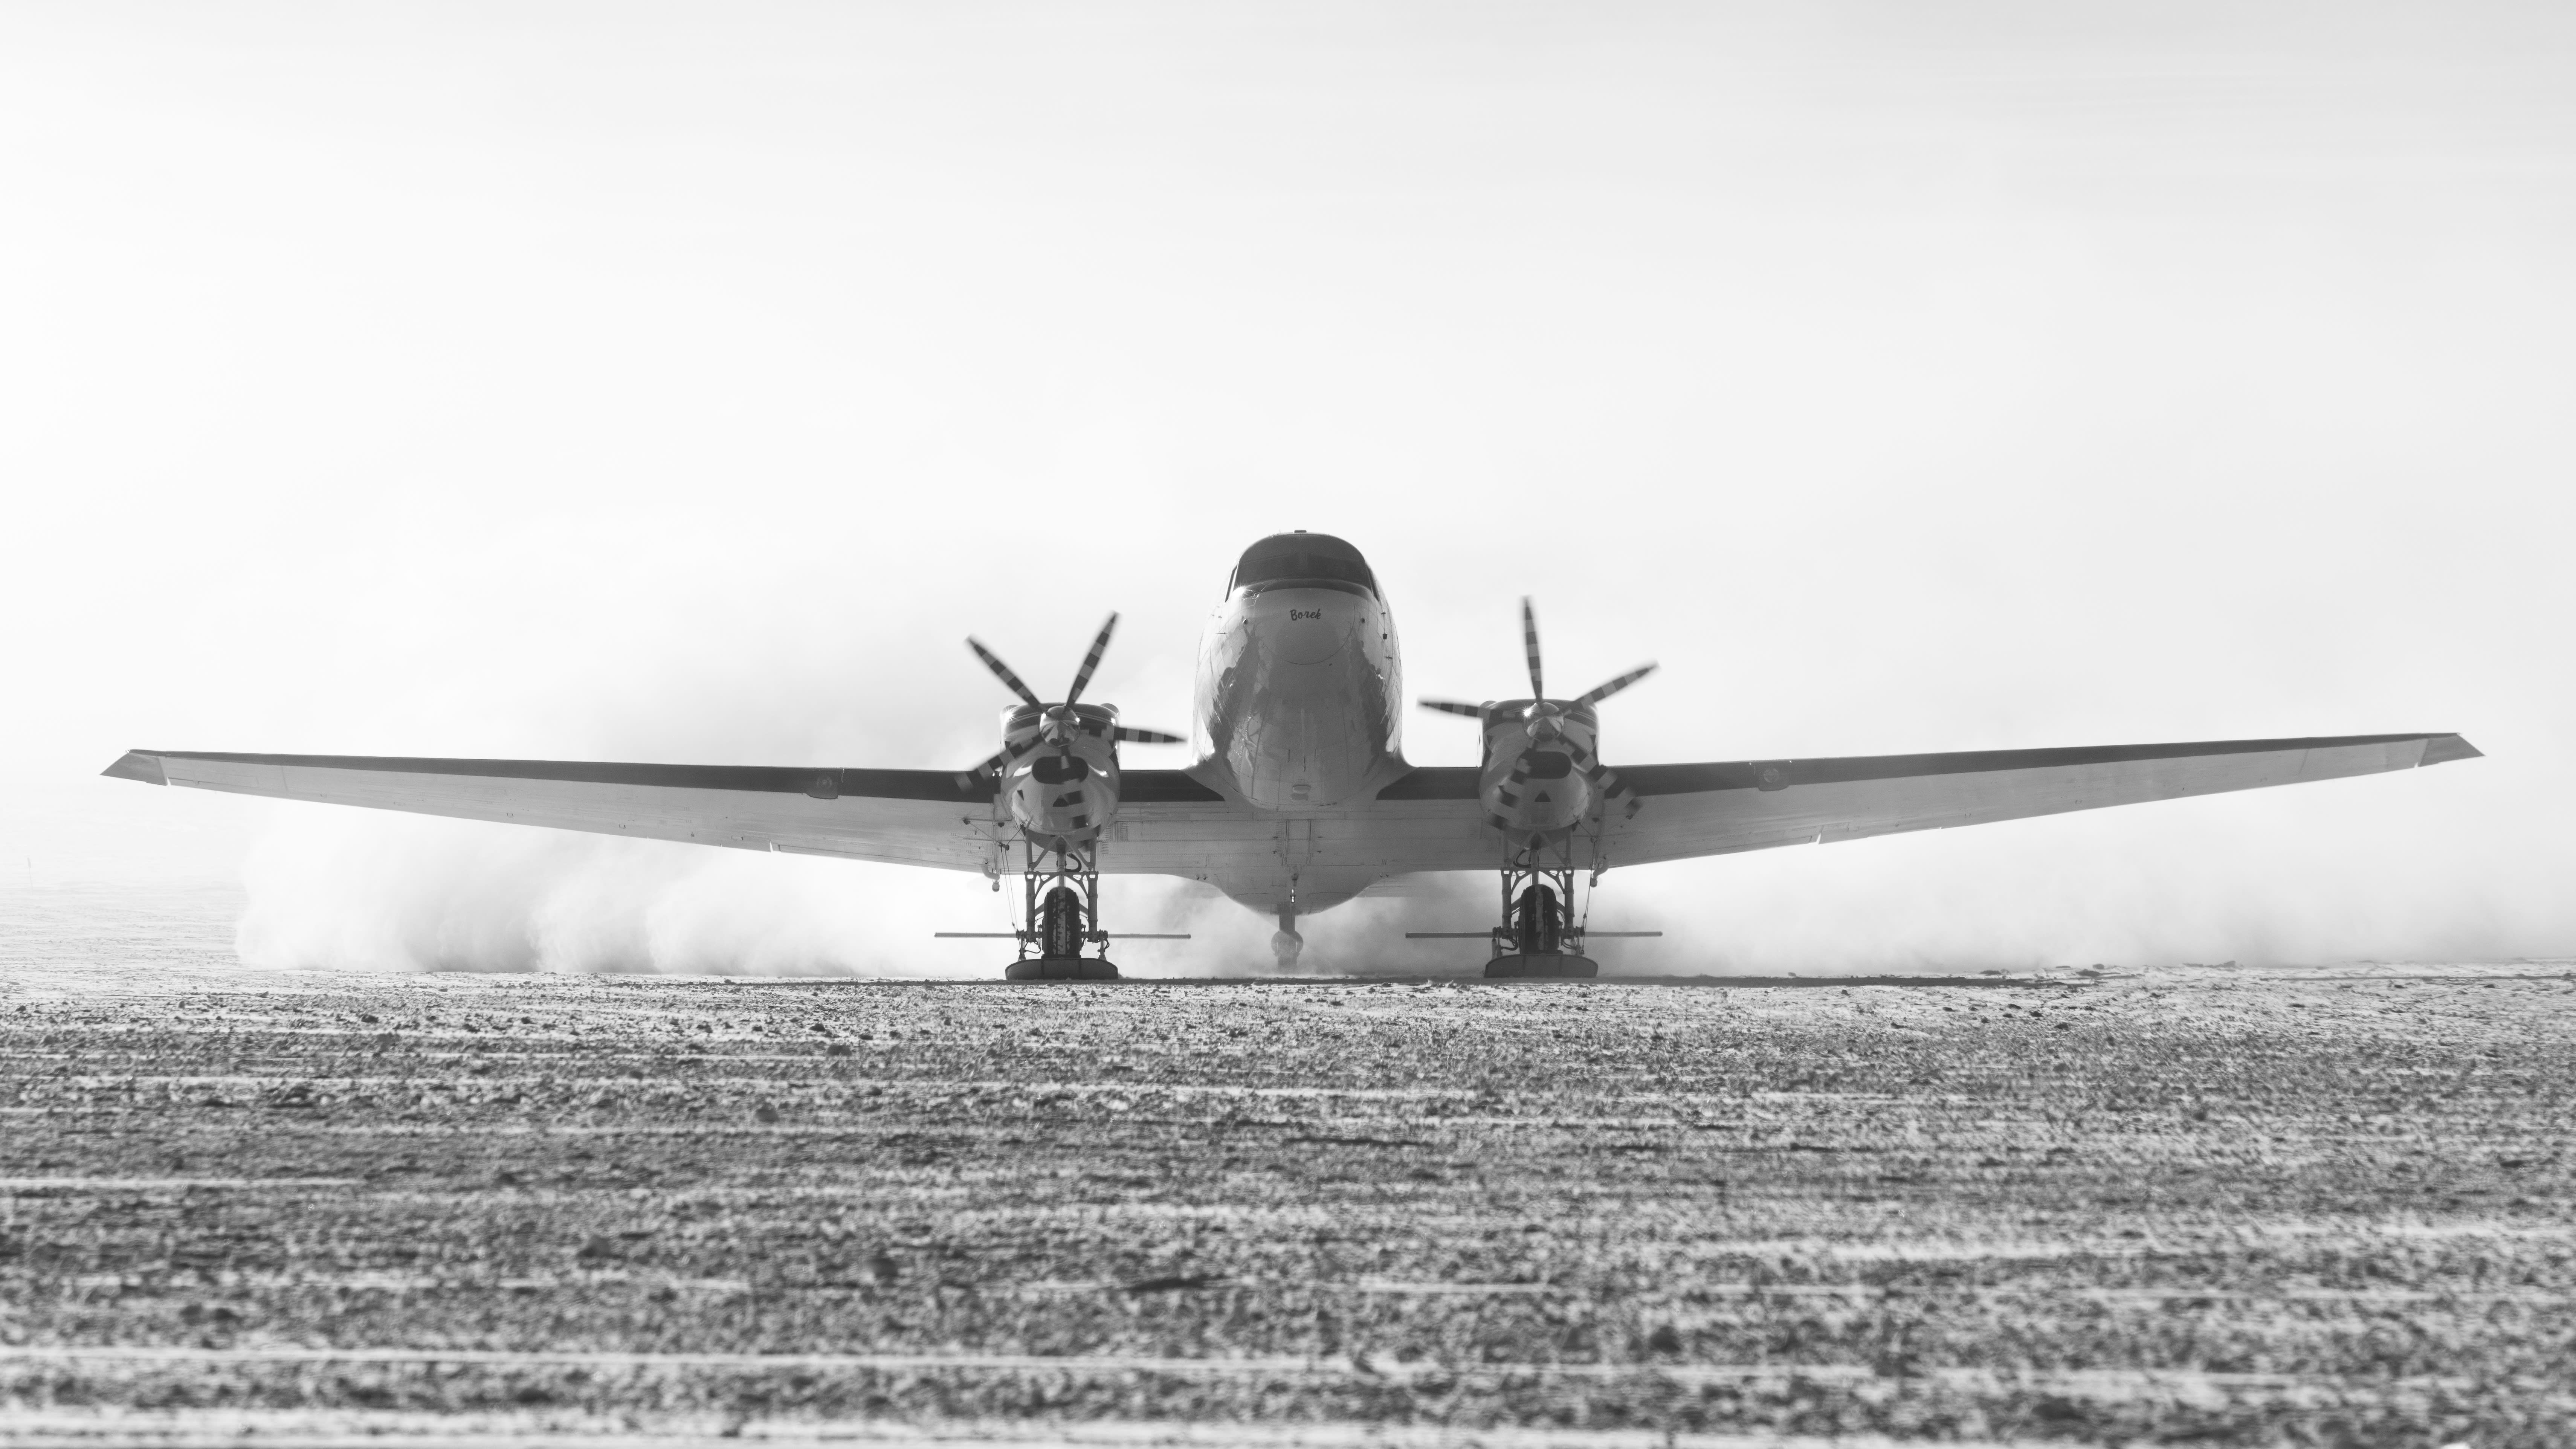 Black and white image showing head-on view of plane landing at South Pole.